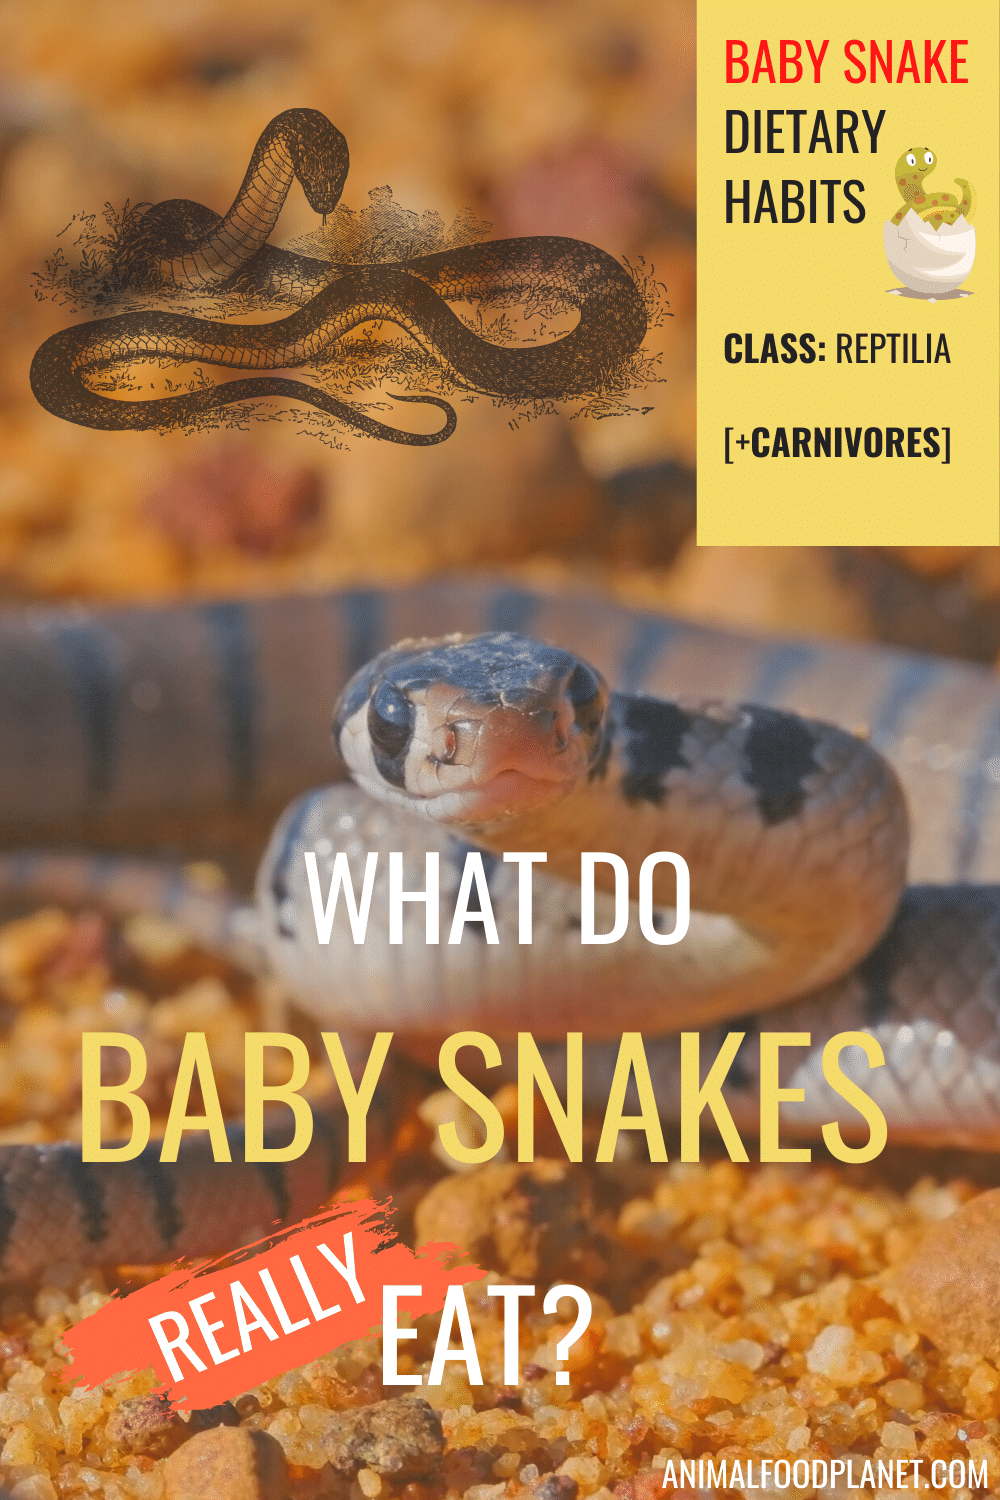 What Do Baby Snakes Really Eat?